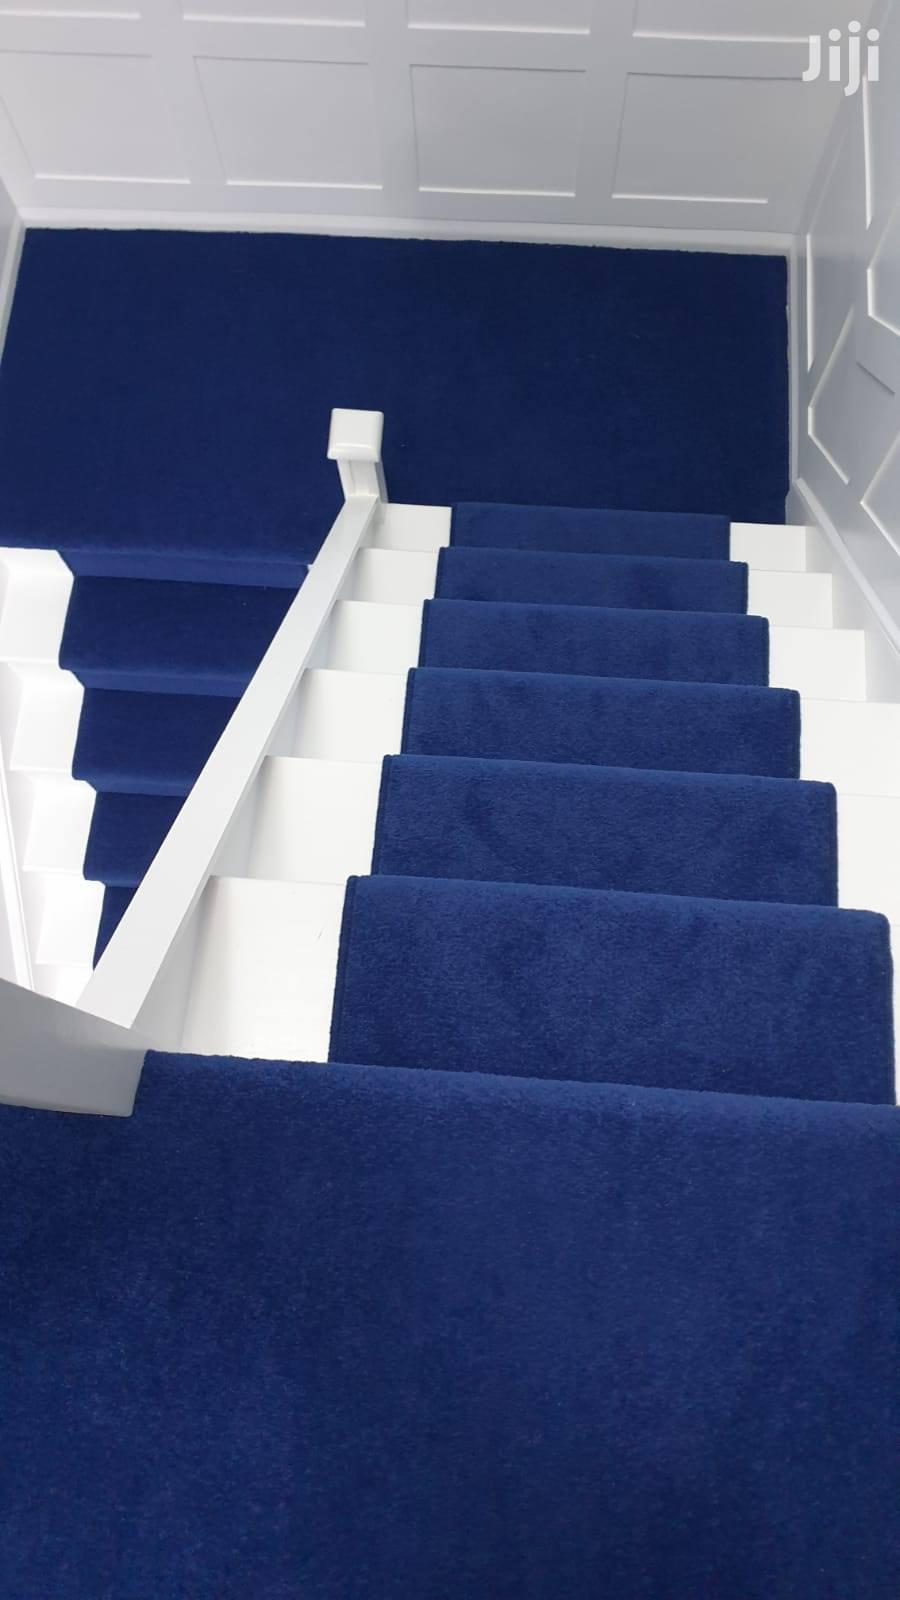 Loyalty Blue Wall to Wall Carpets   Home Accessories for sale in Nairobi Central, Nairobi, Kenya